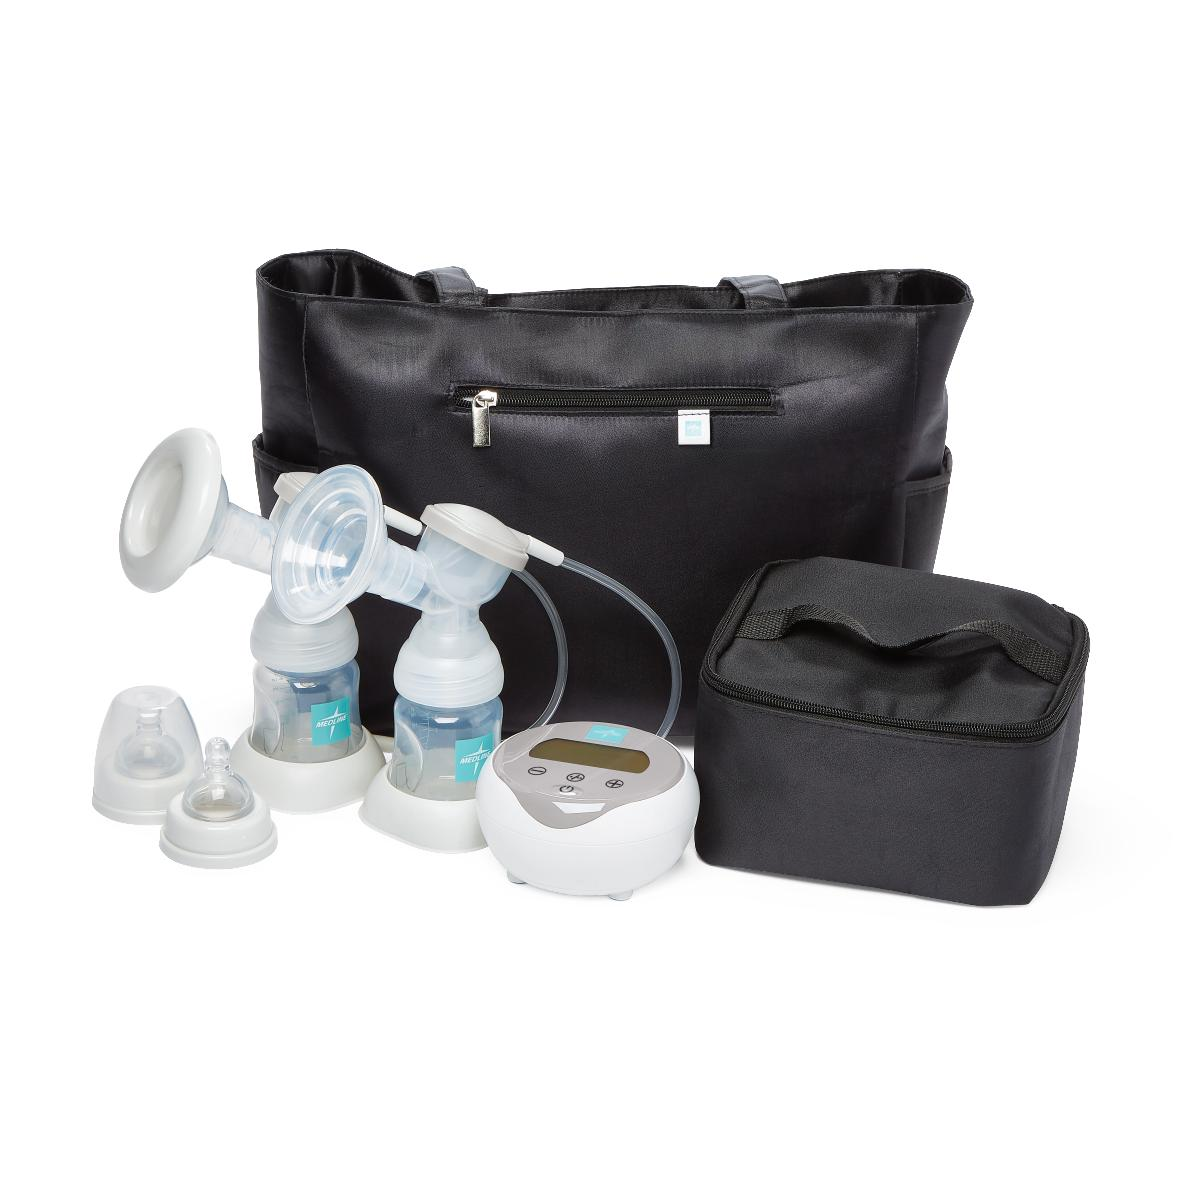 Double Electric Breast Pump Kit w/ Six Bottles